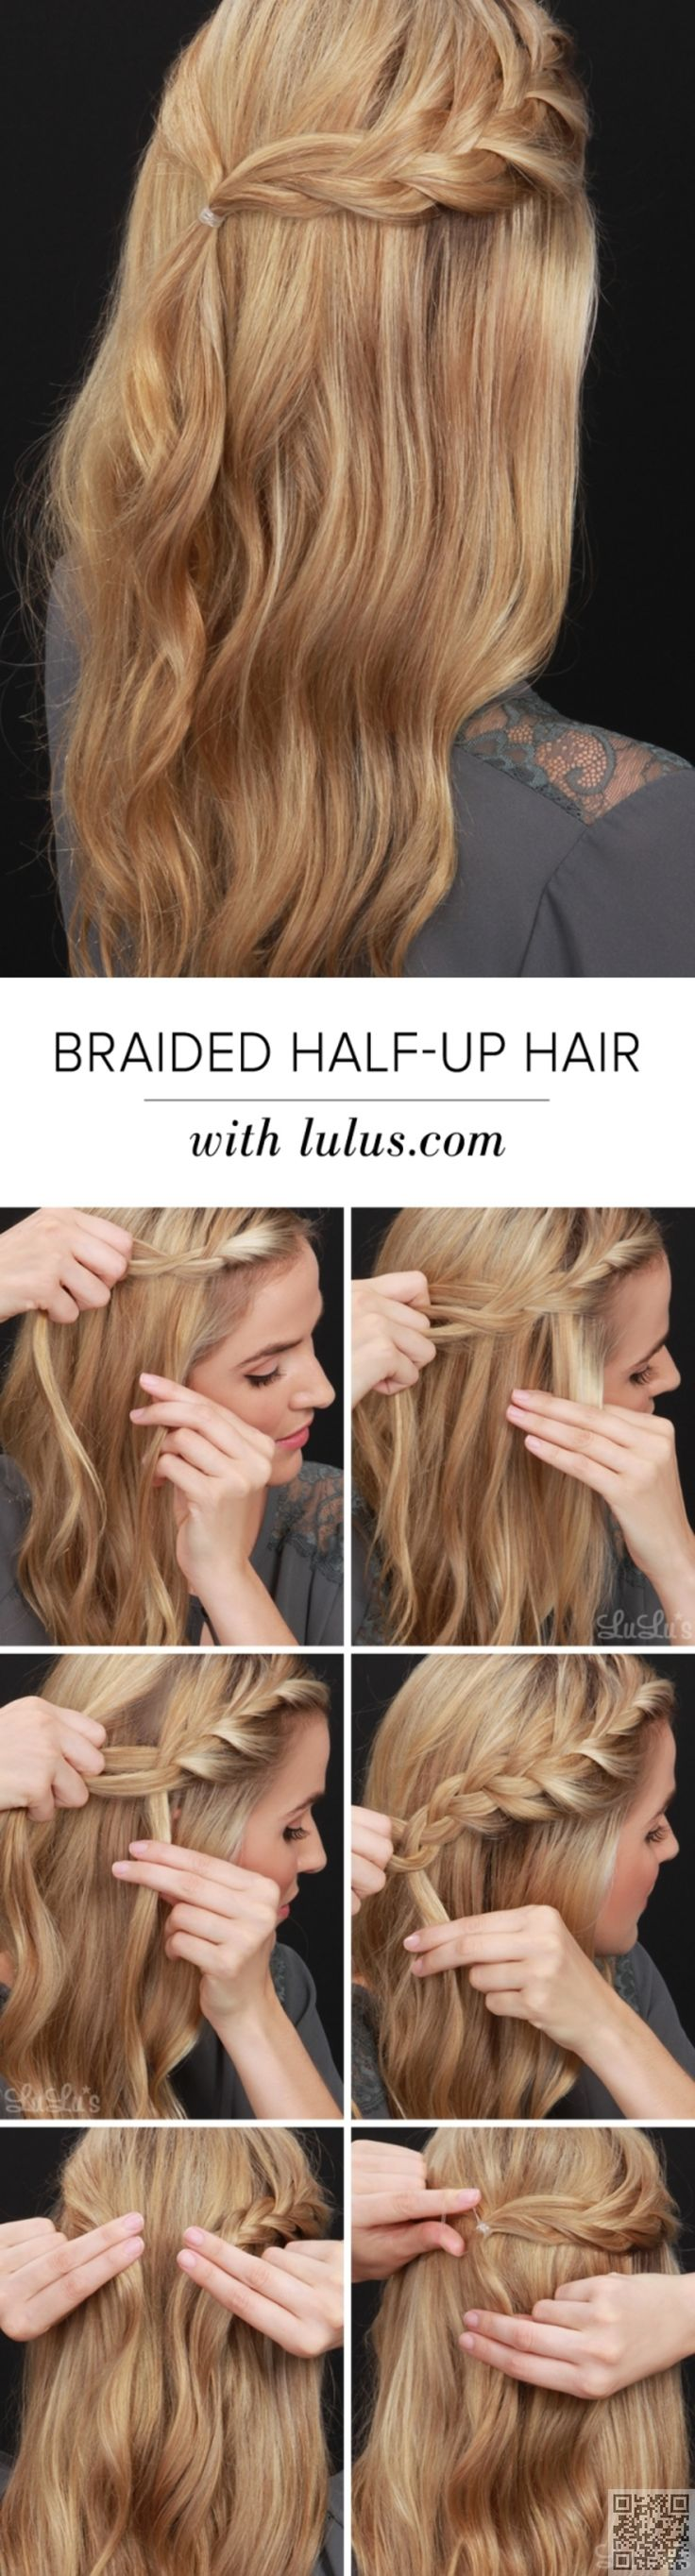 best 25+ hair down braid ideas on pinterest | pictures of braided